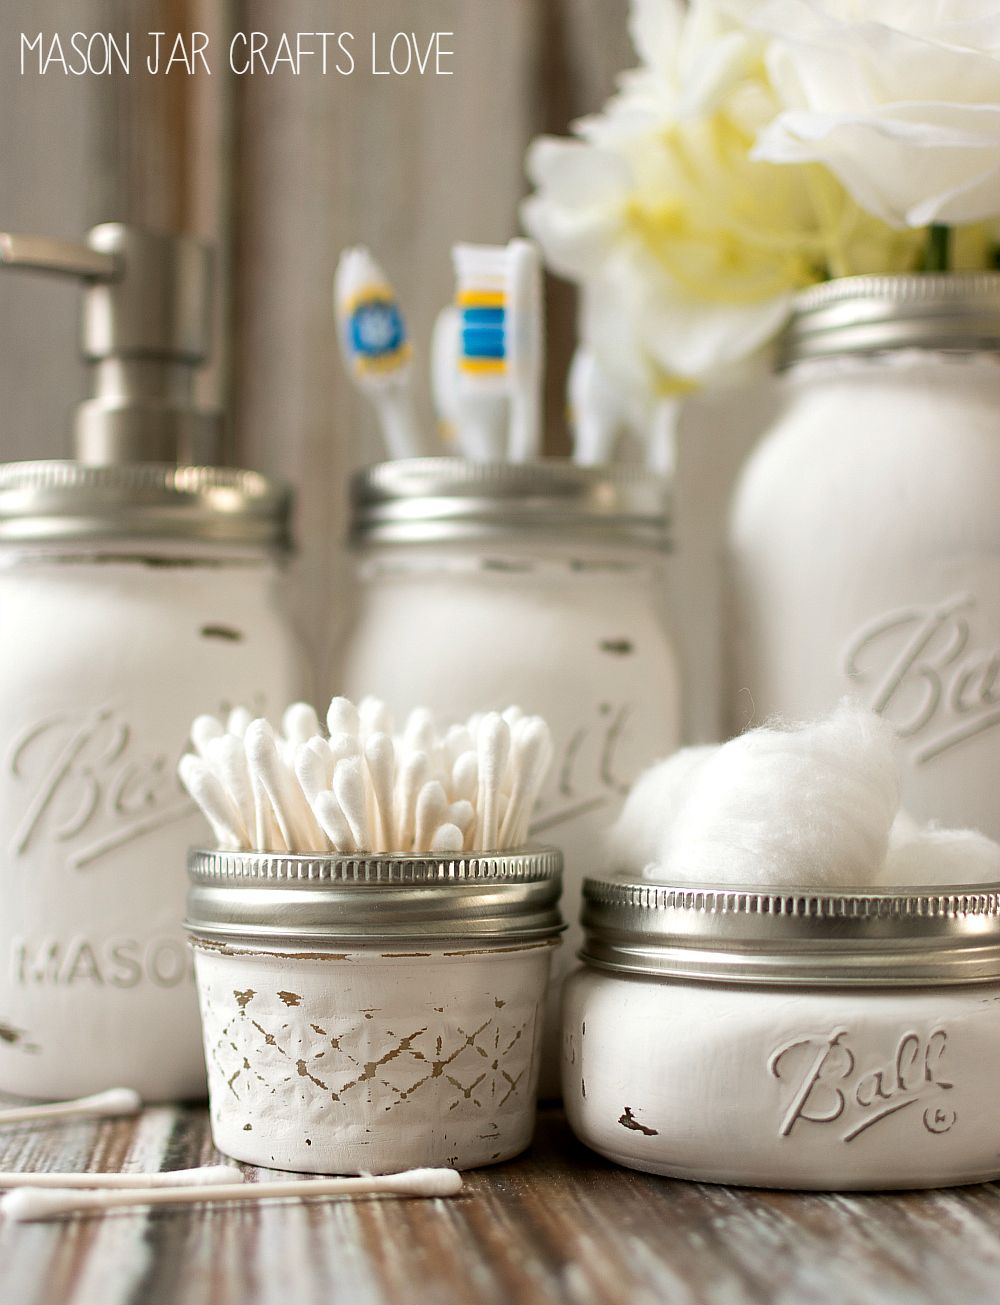 8 Great Mason Jar Ideas - Easy Crafts and Decor for Mason Jars